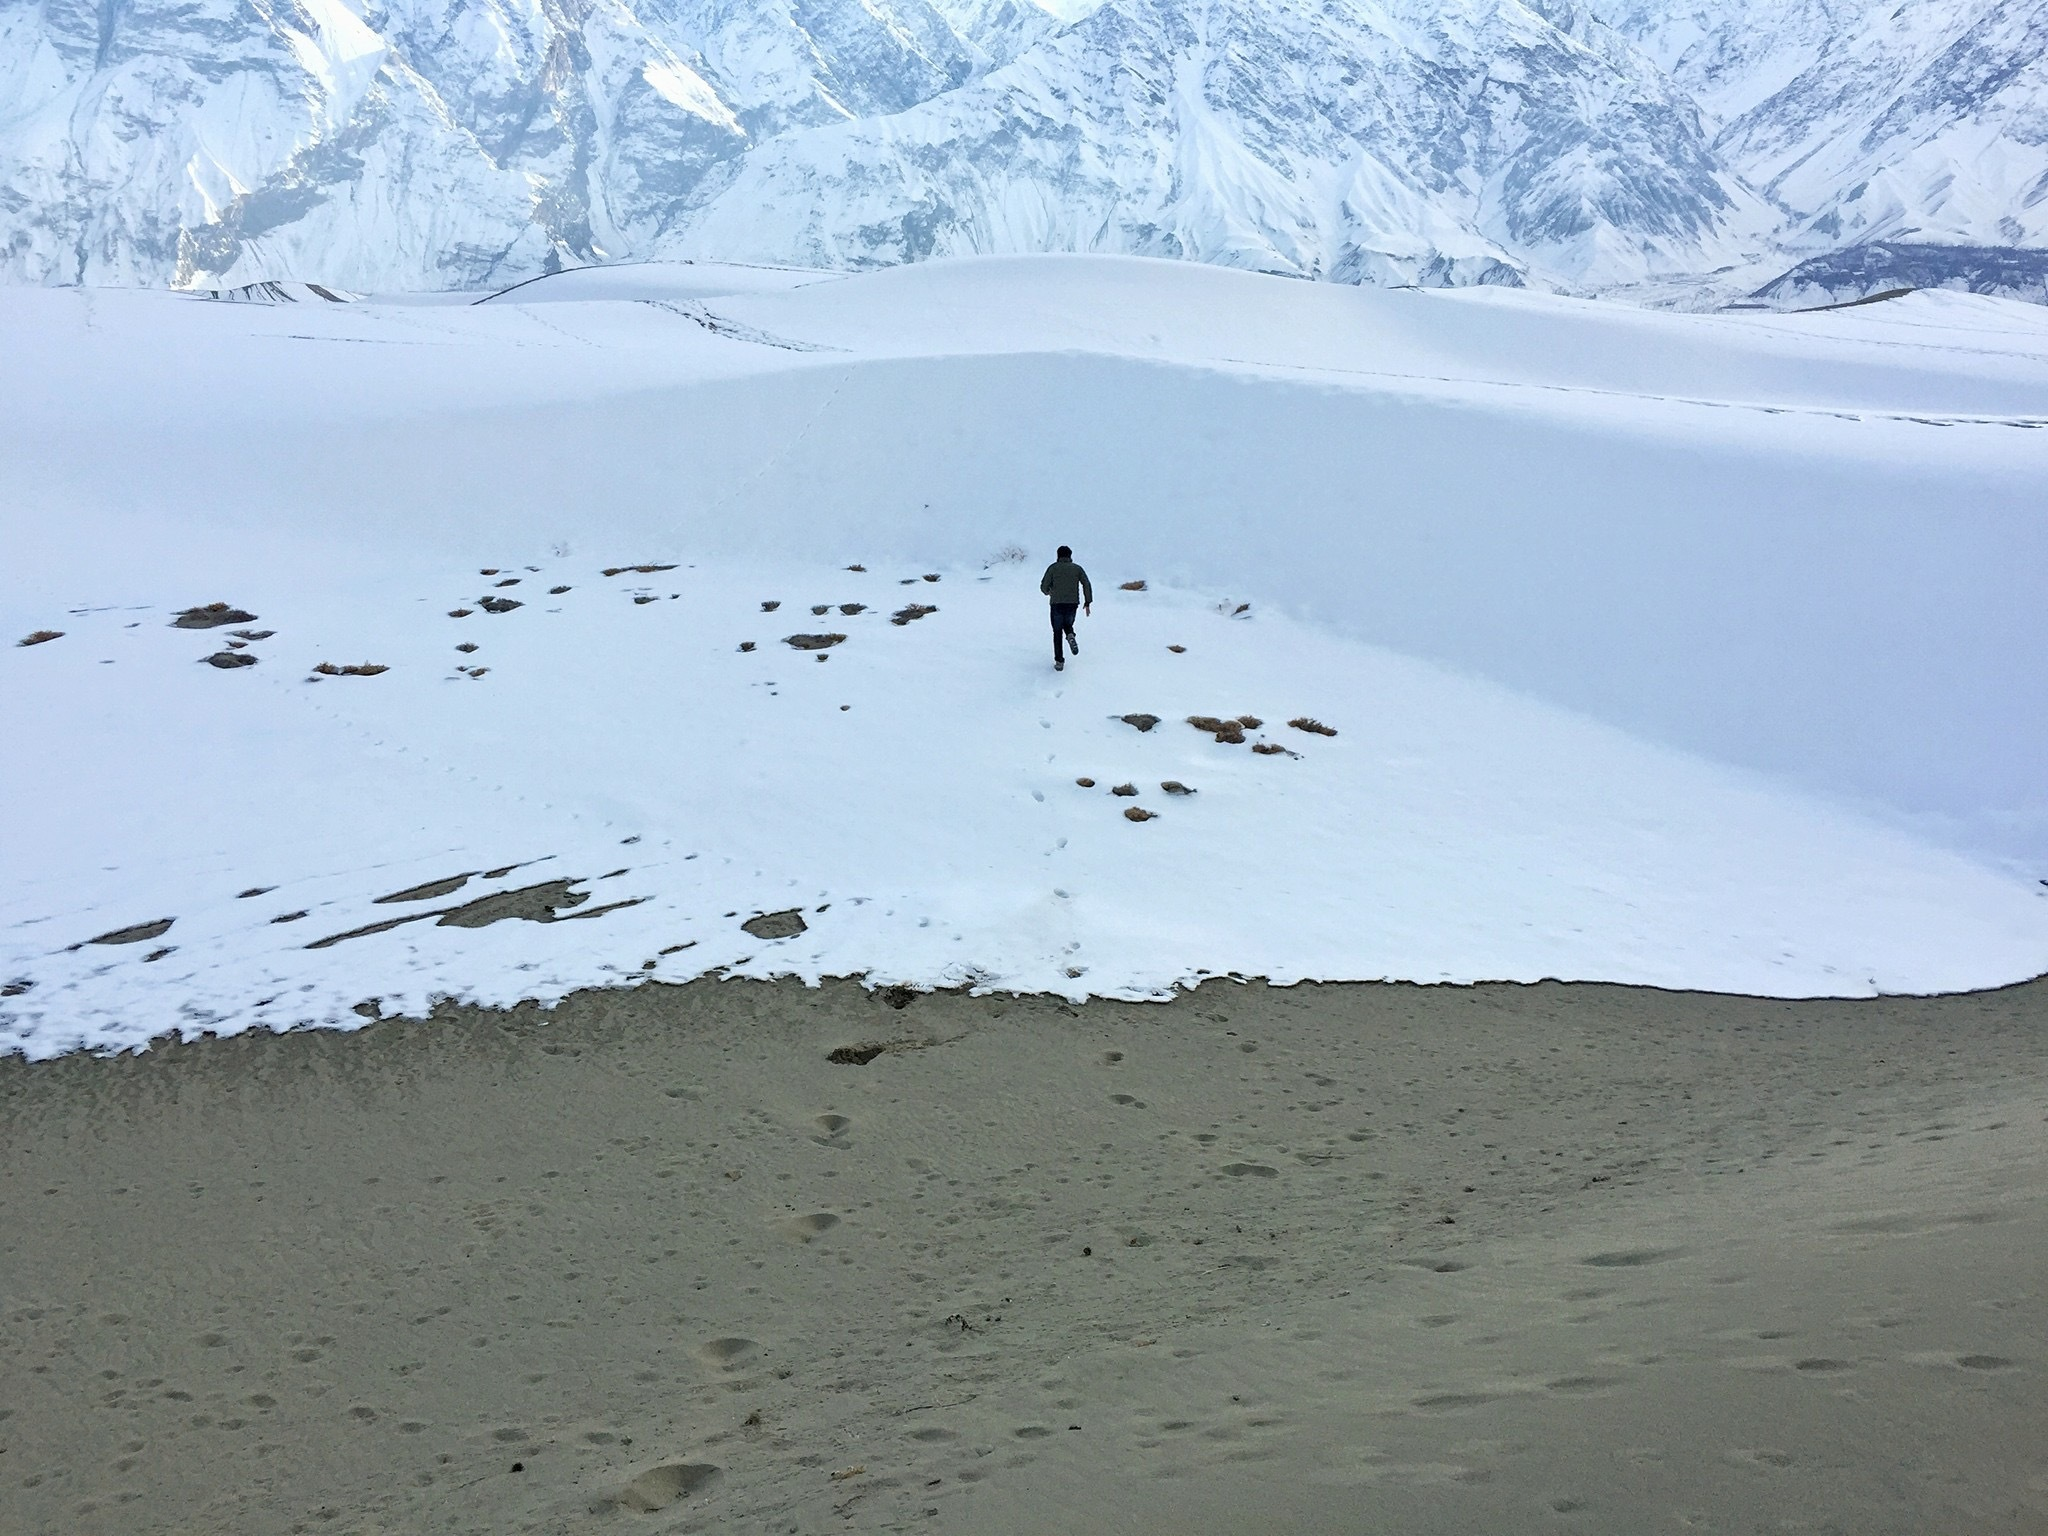 Cold Desert with snow in Pakistan only  by Imran Ali Chaudhry